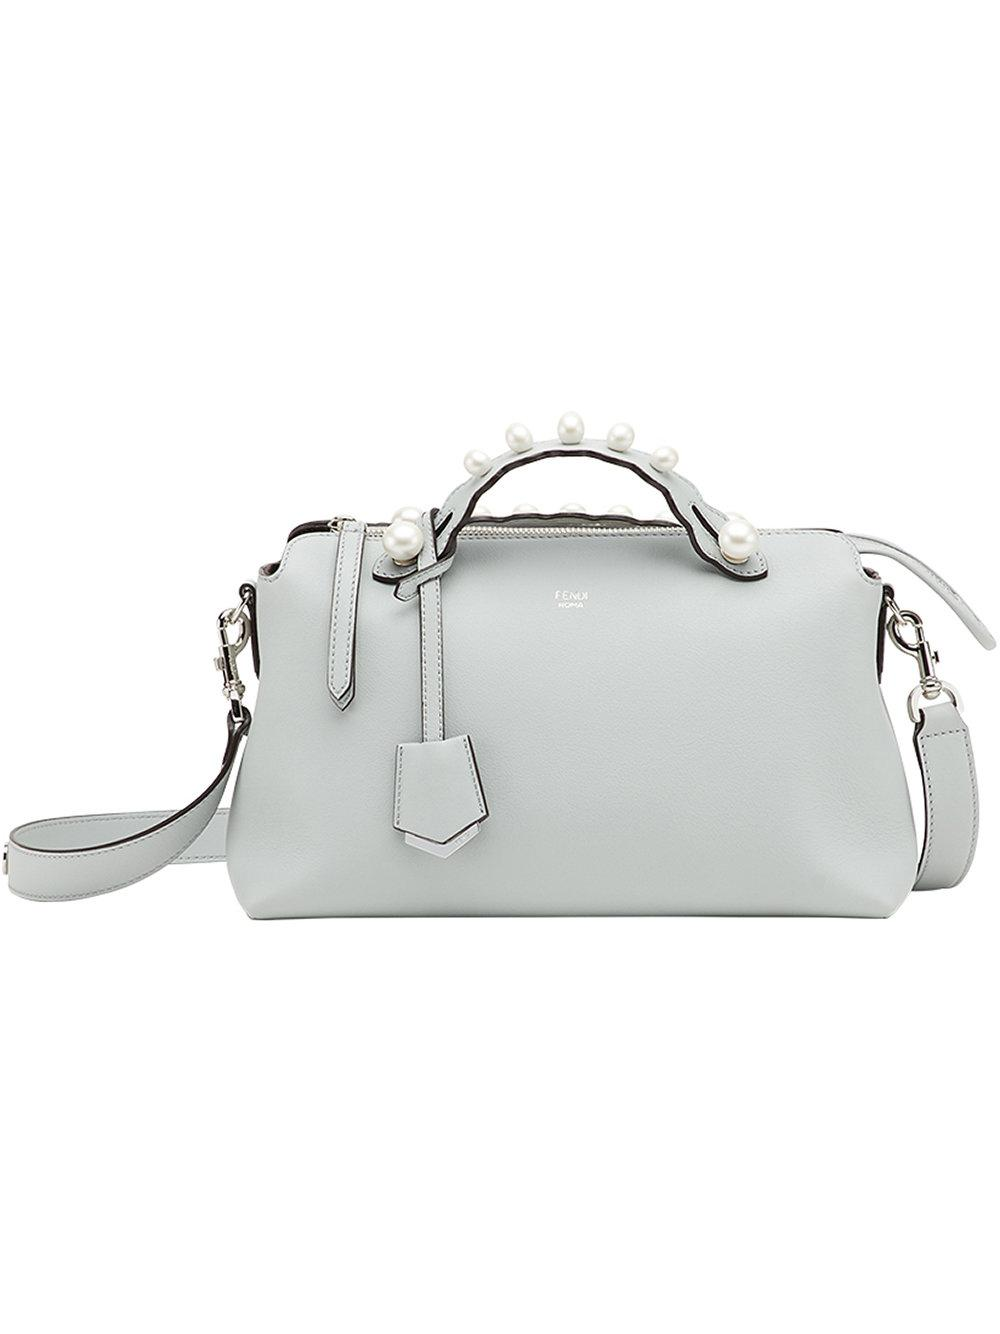 c6375dde94 Fendi Grey Medium Pearl  By The Way  Bag